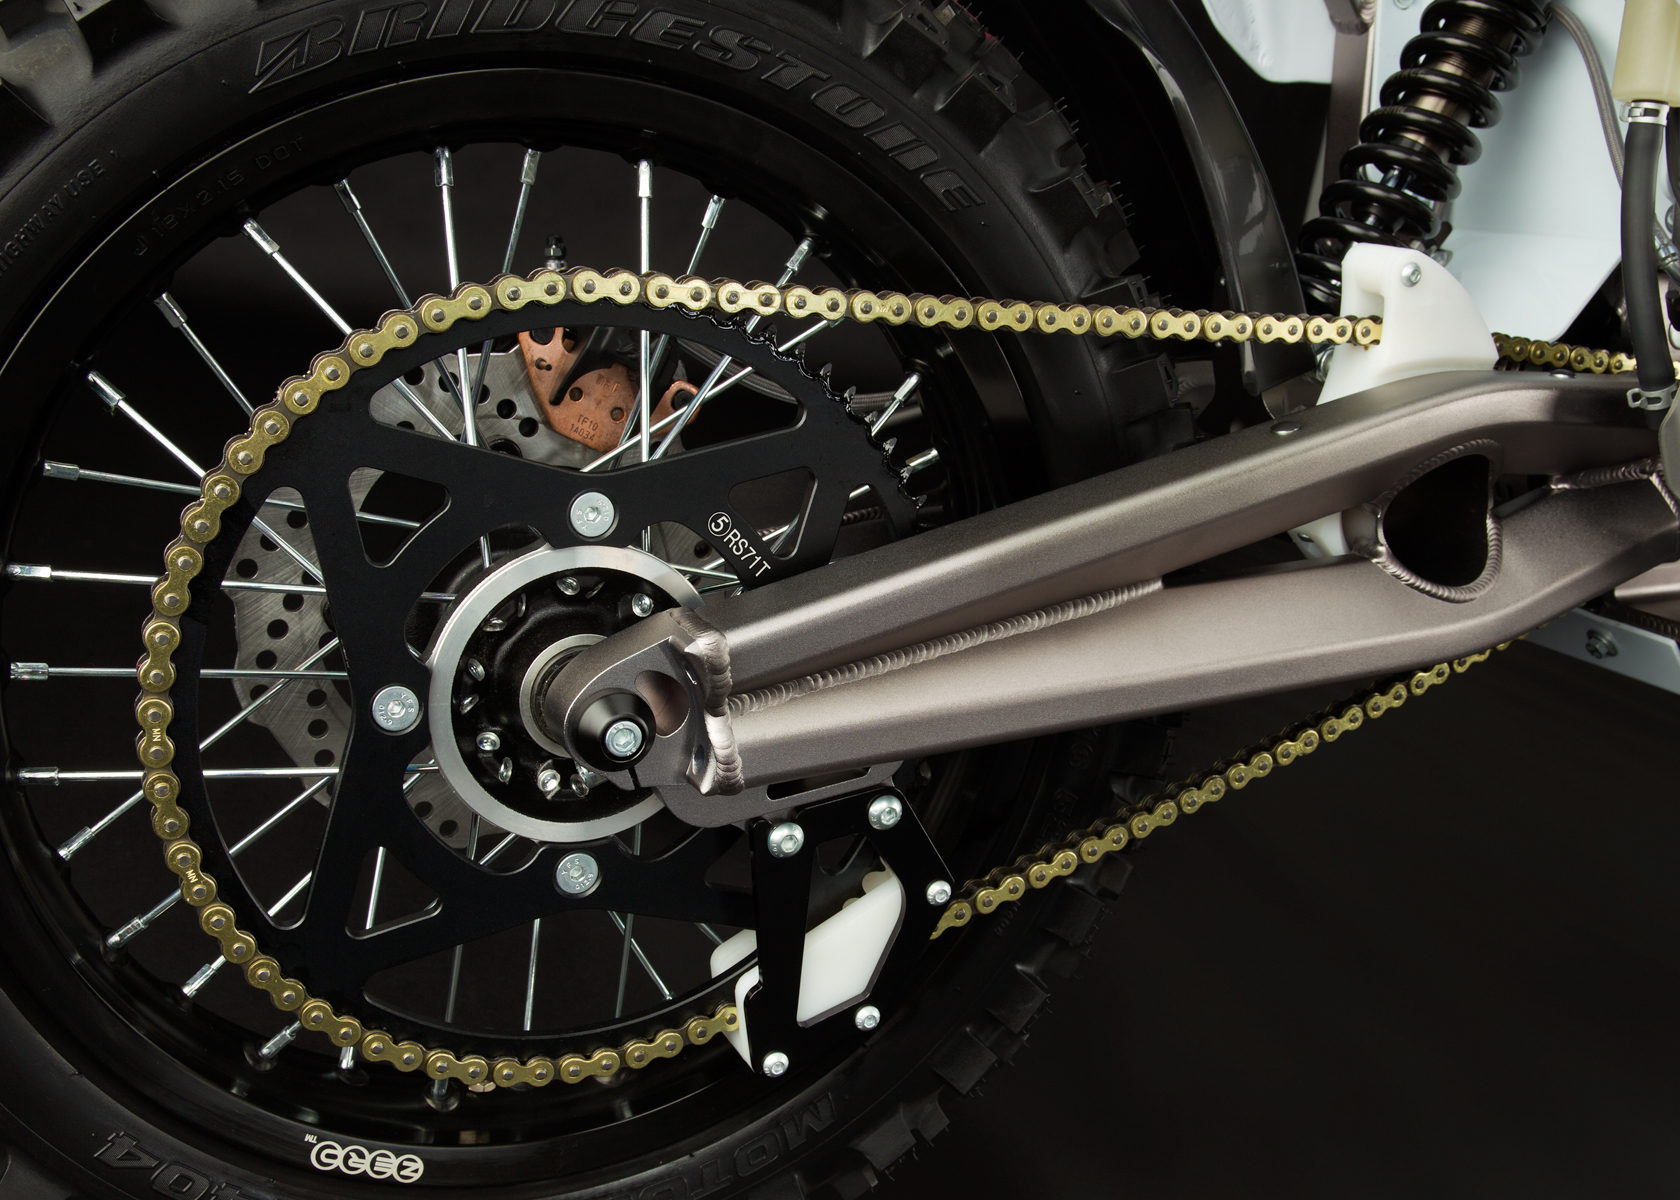 2012 Zero MX Electric Motorcycle: Swingarm